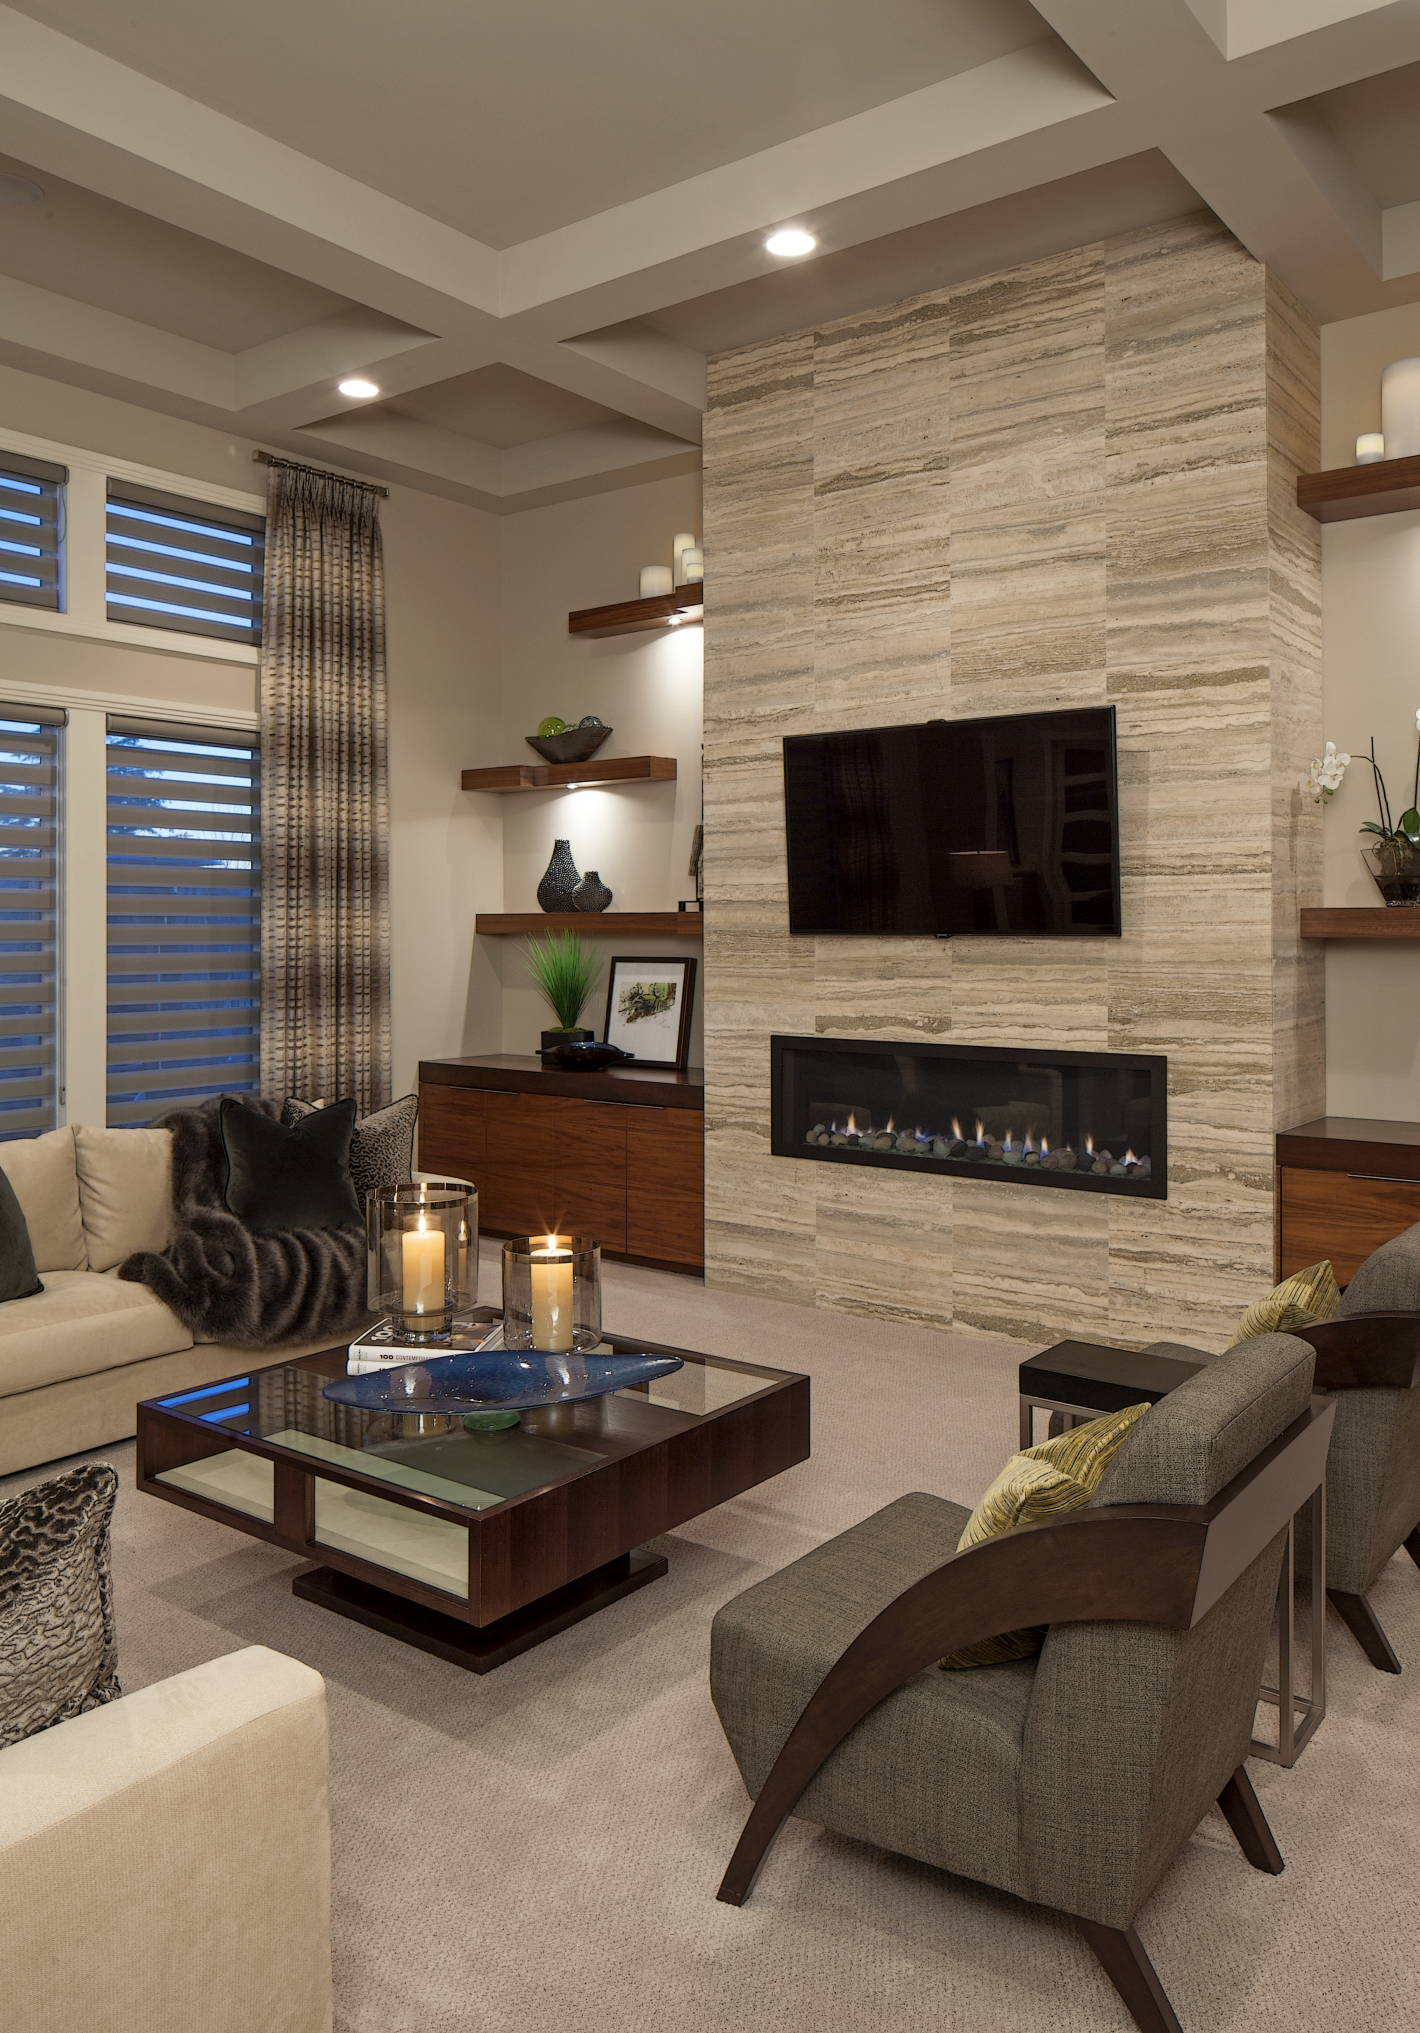 75 Beautiful Living Room With A Wall Mounted Tv Pictures Ideas March 2021 Houzz